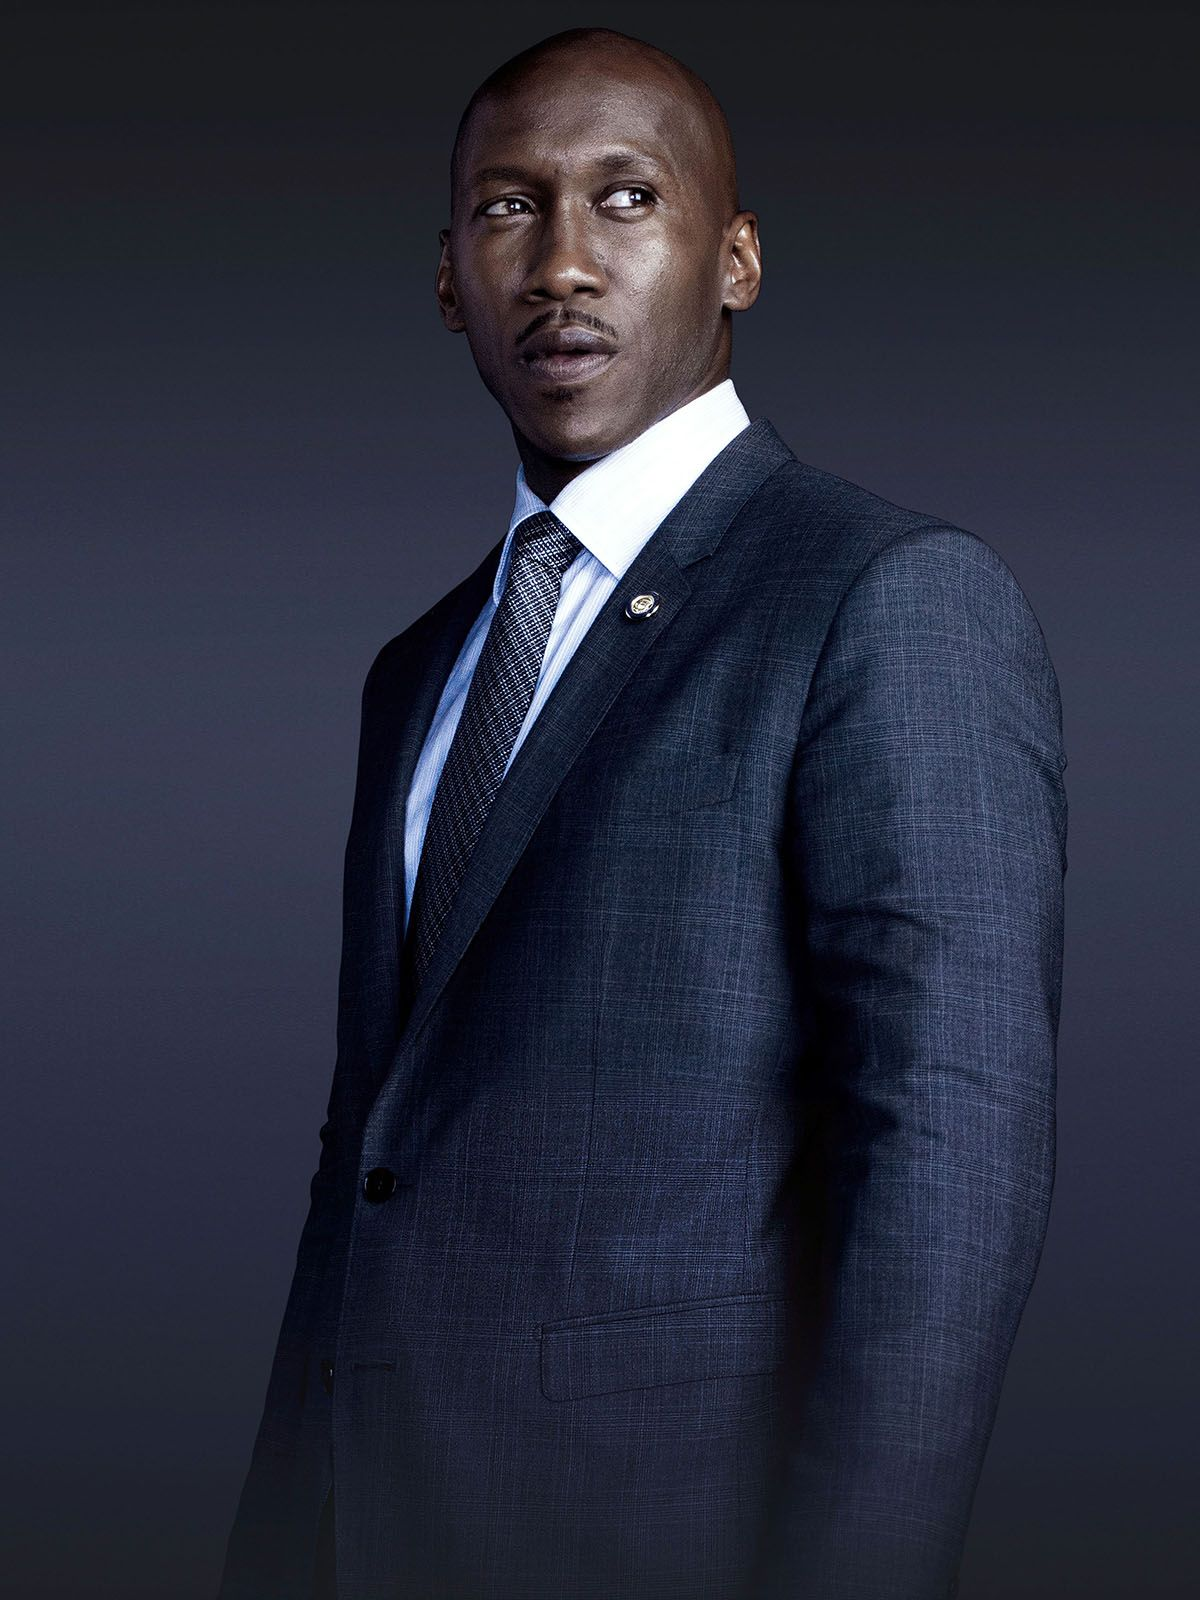 mahershala ali wife